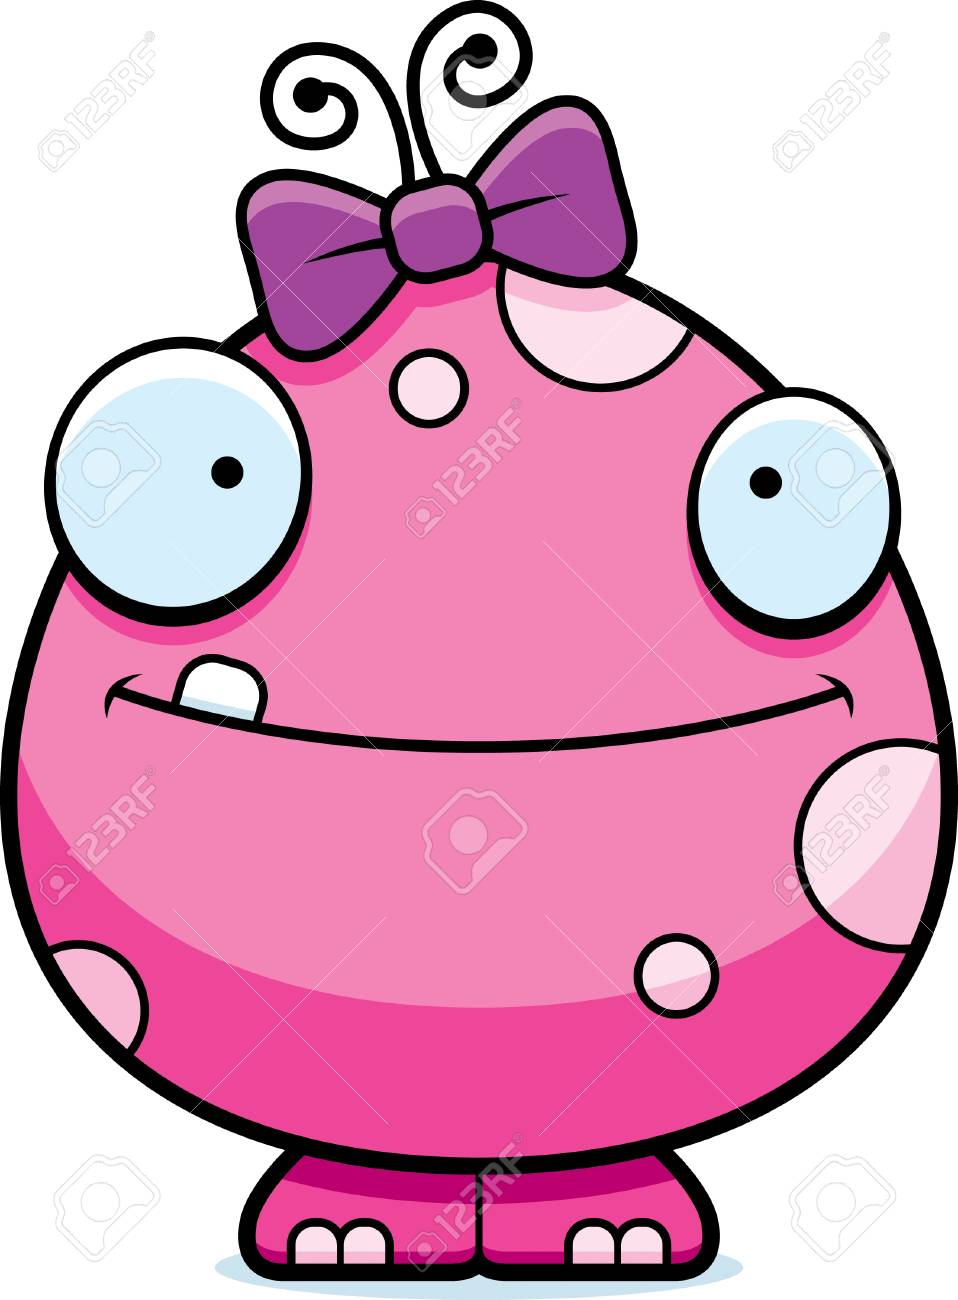 A cartoon illustration of a baby girl monster looking happy..